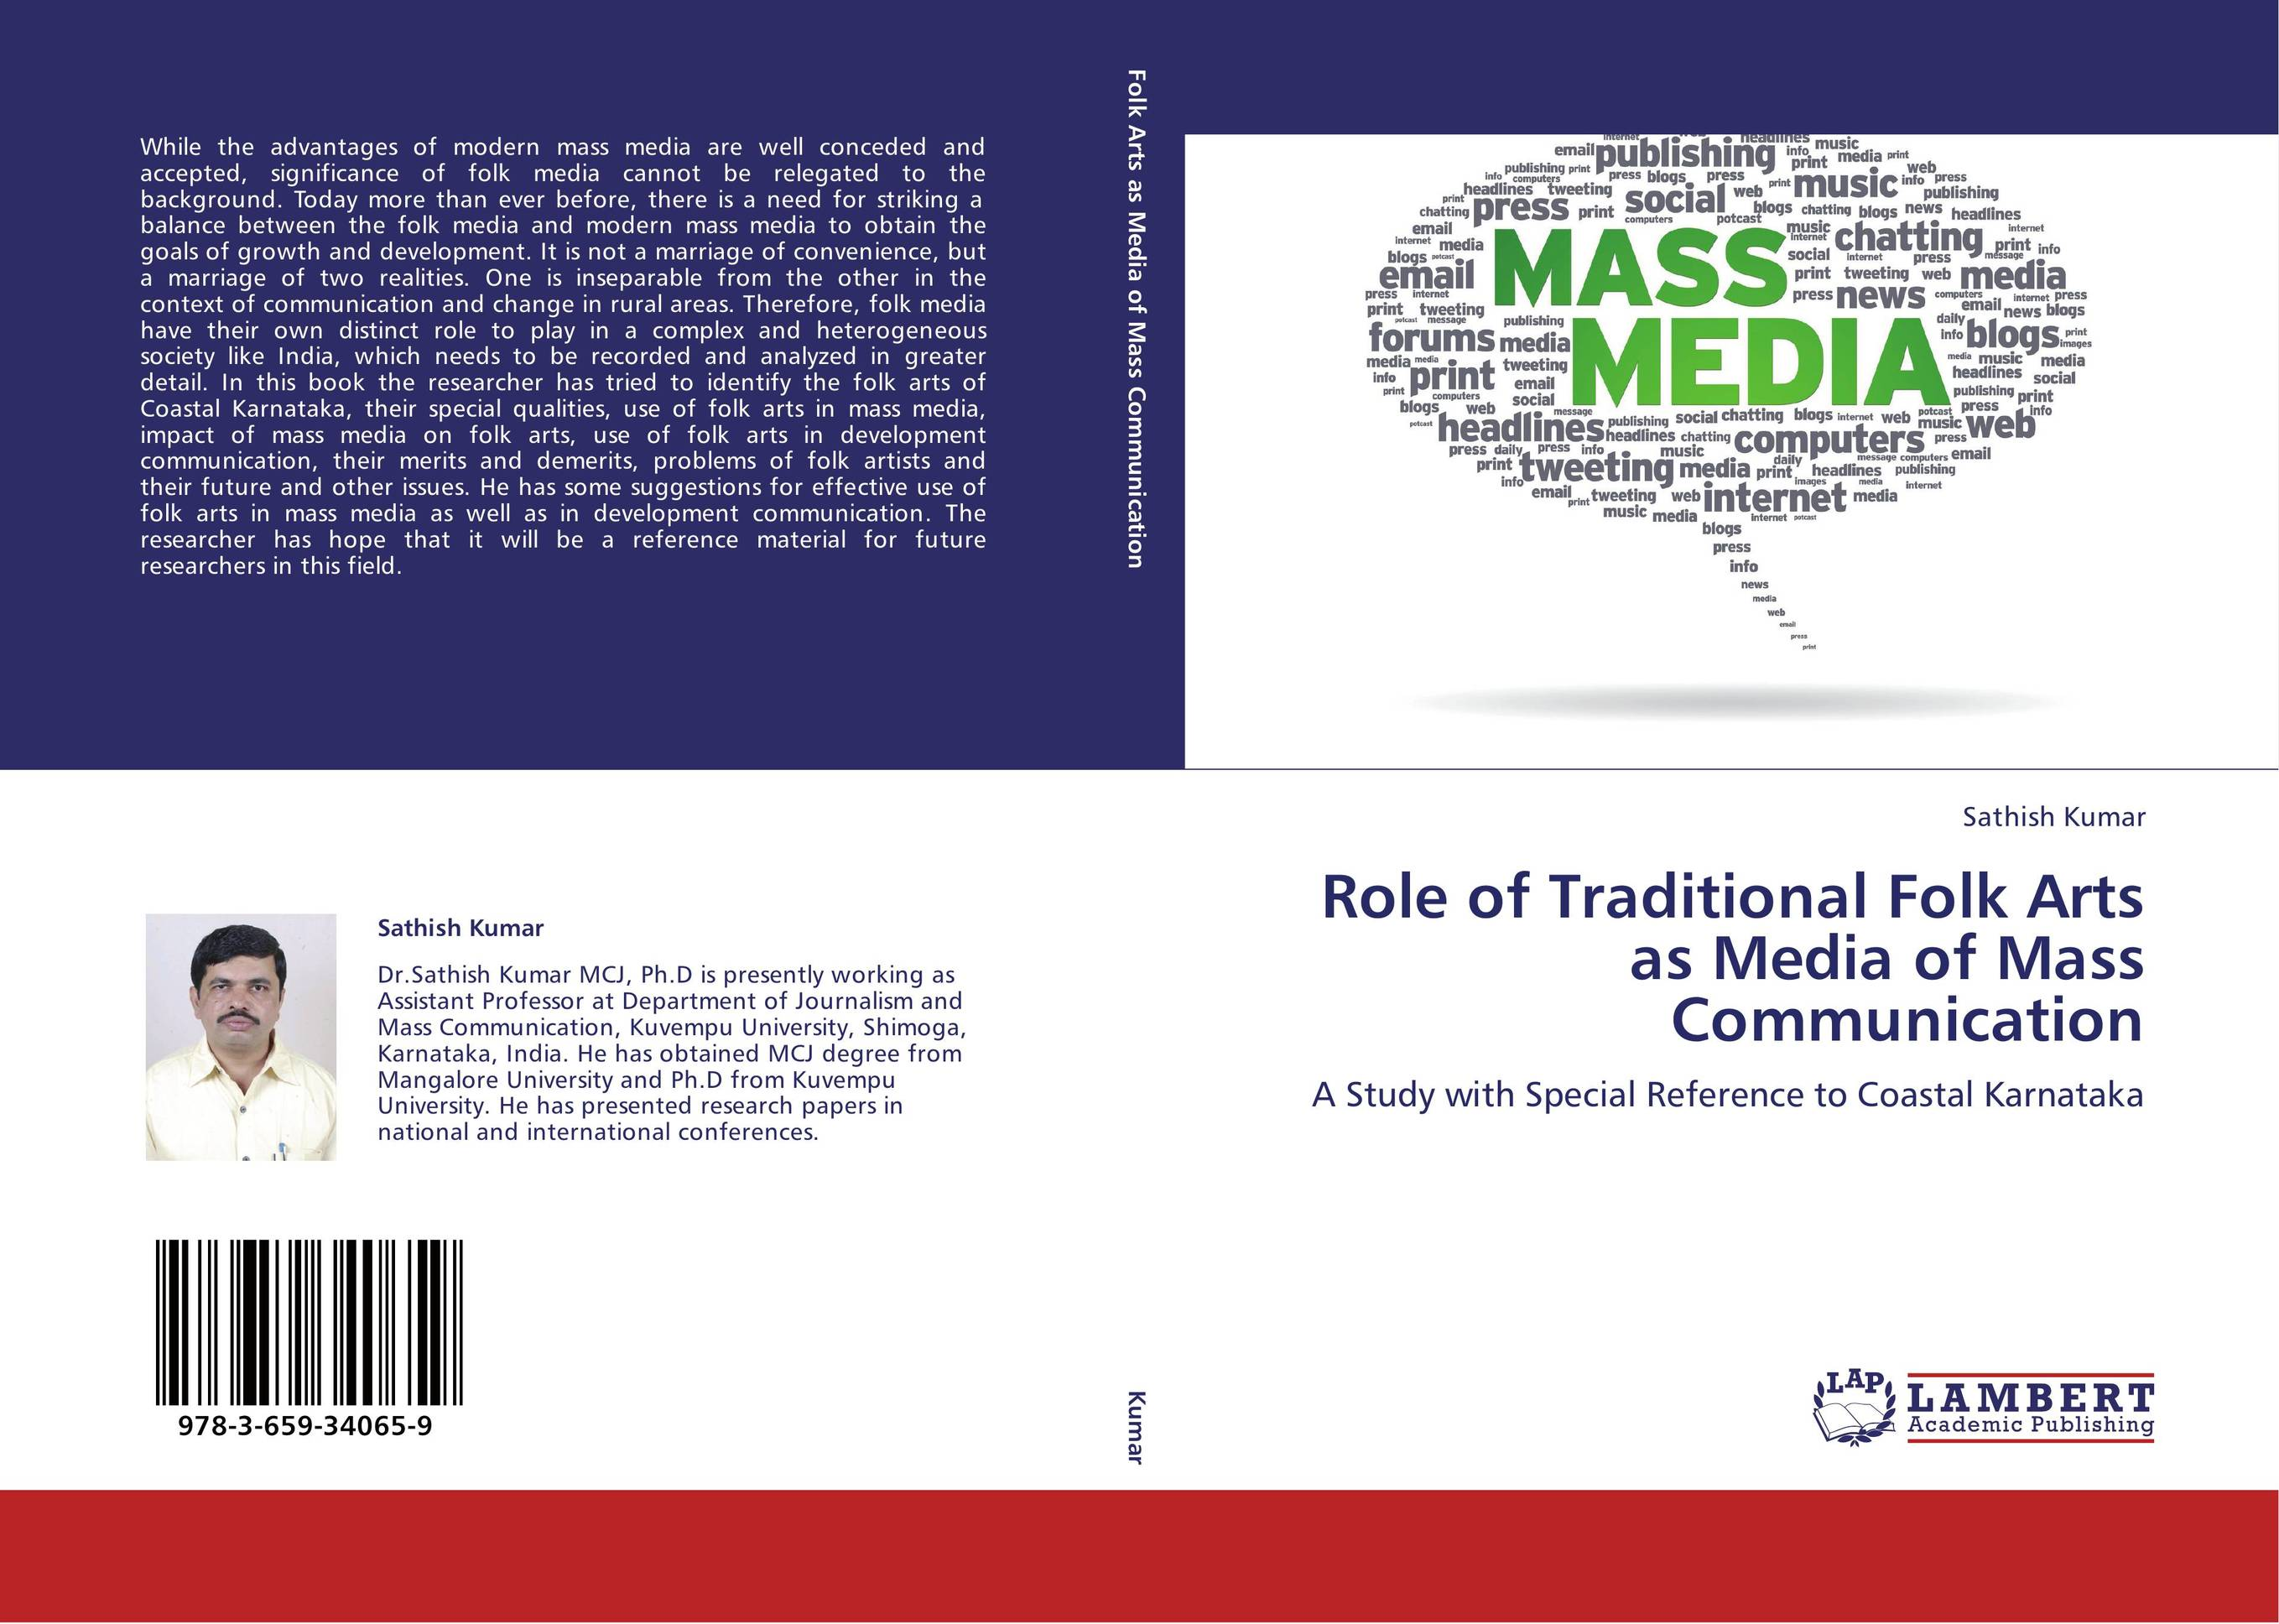 a study of mass communication Mass communication differs from the studies of other forms of communication, such as interpersonal communication or organizational communication, in that it focuses on a single source transmitting information to a large number of receivers.